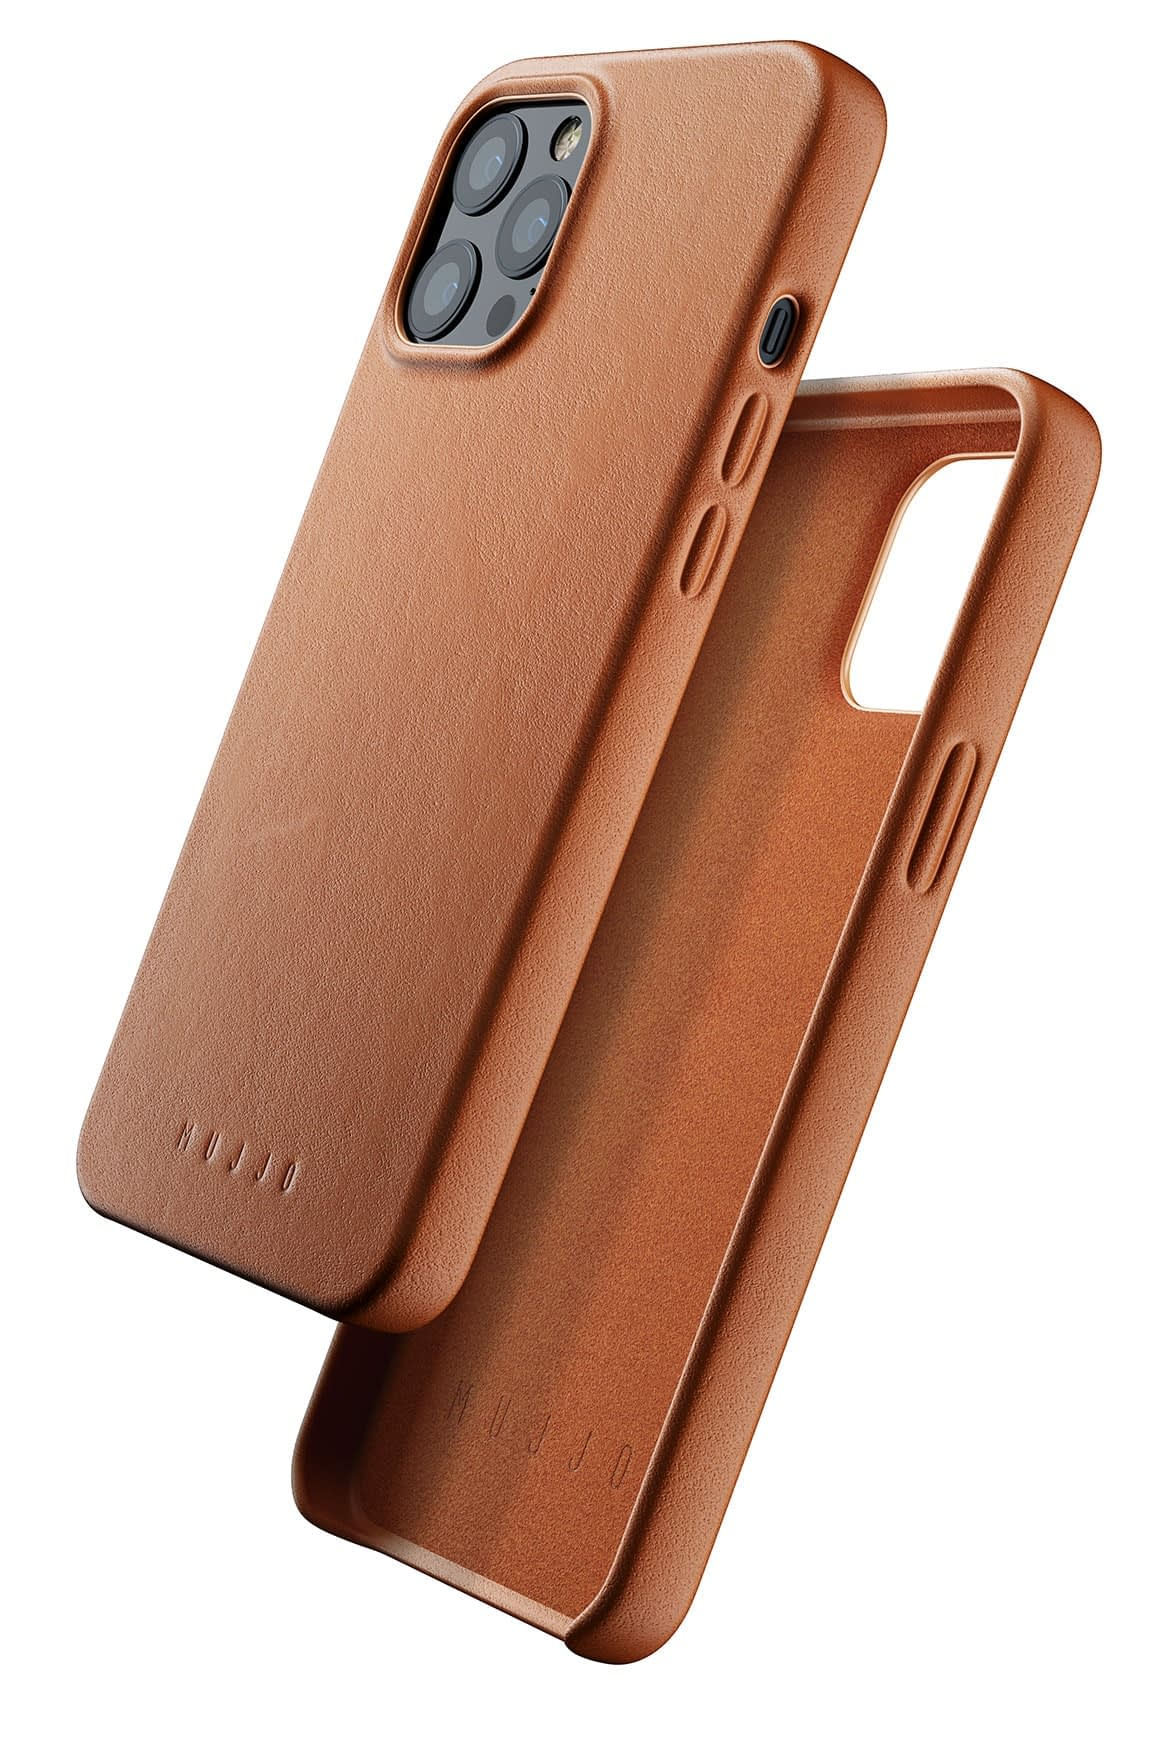 Full Leather Case for iPhone 12 Pro Max Tan 01